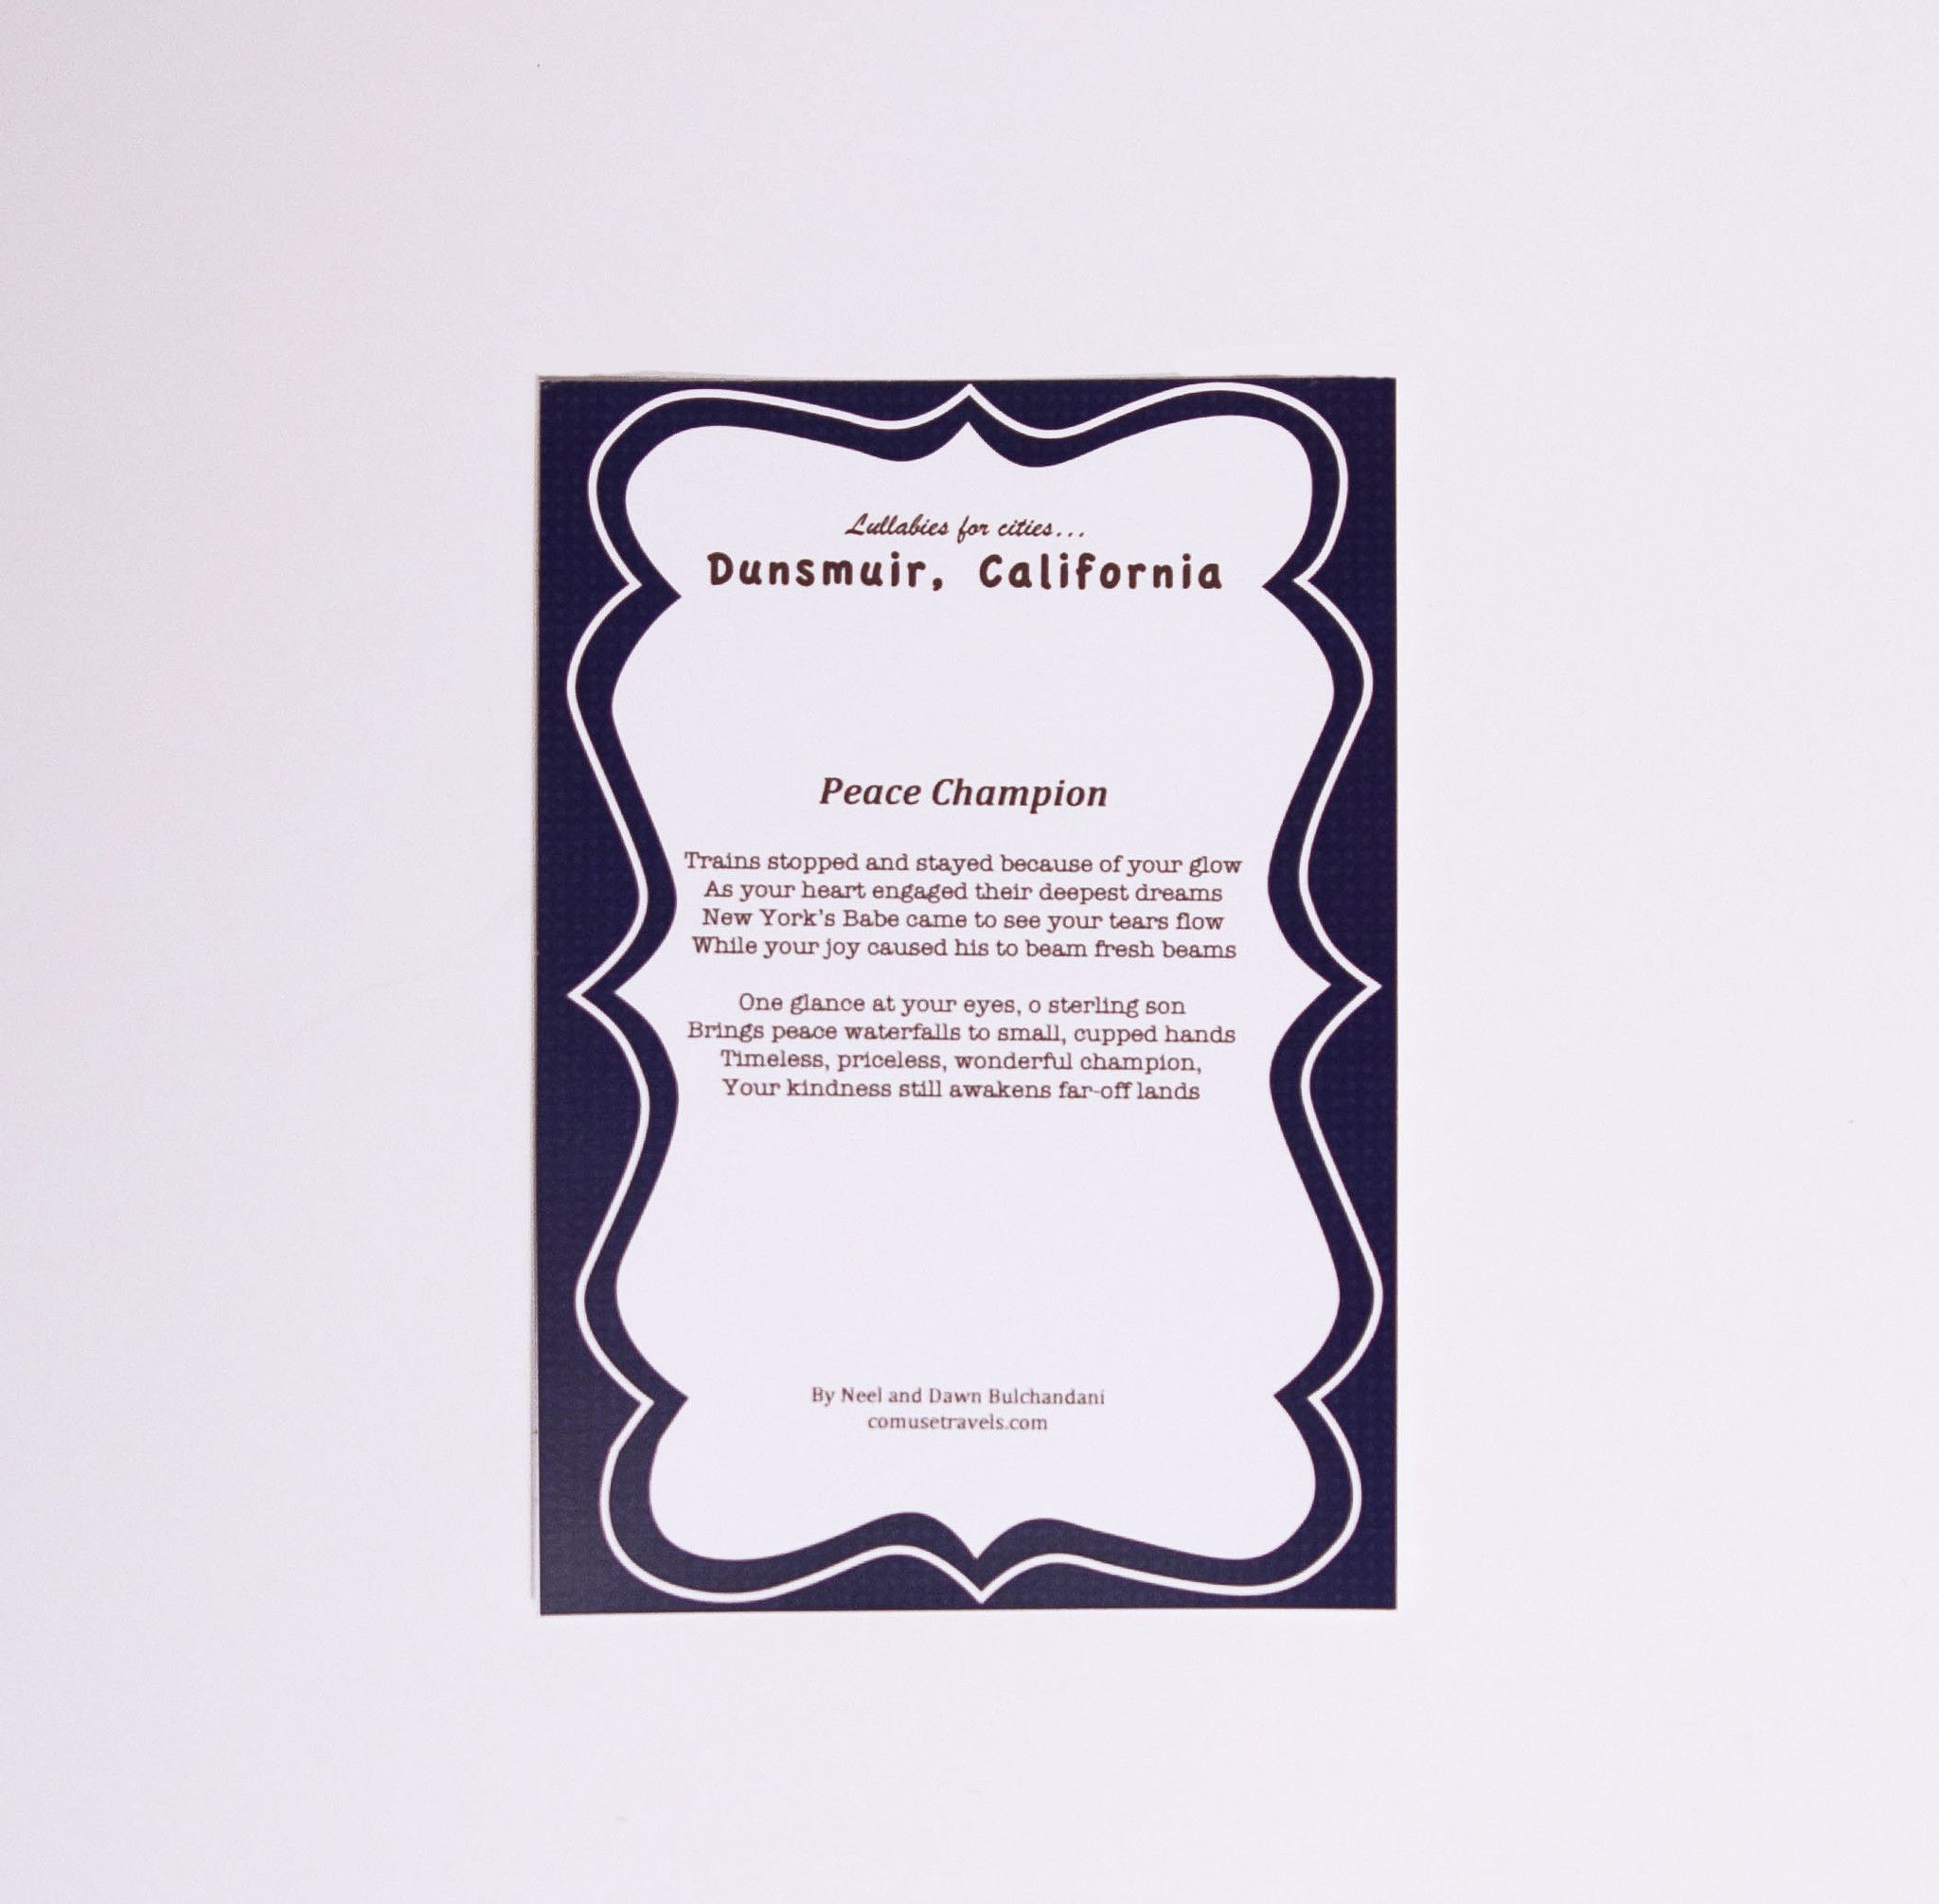 Gold color cardstock paper 5x7 - Dunsmuir California Poem Comuse 5x7 Print On Thick Cardstock Frame Not